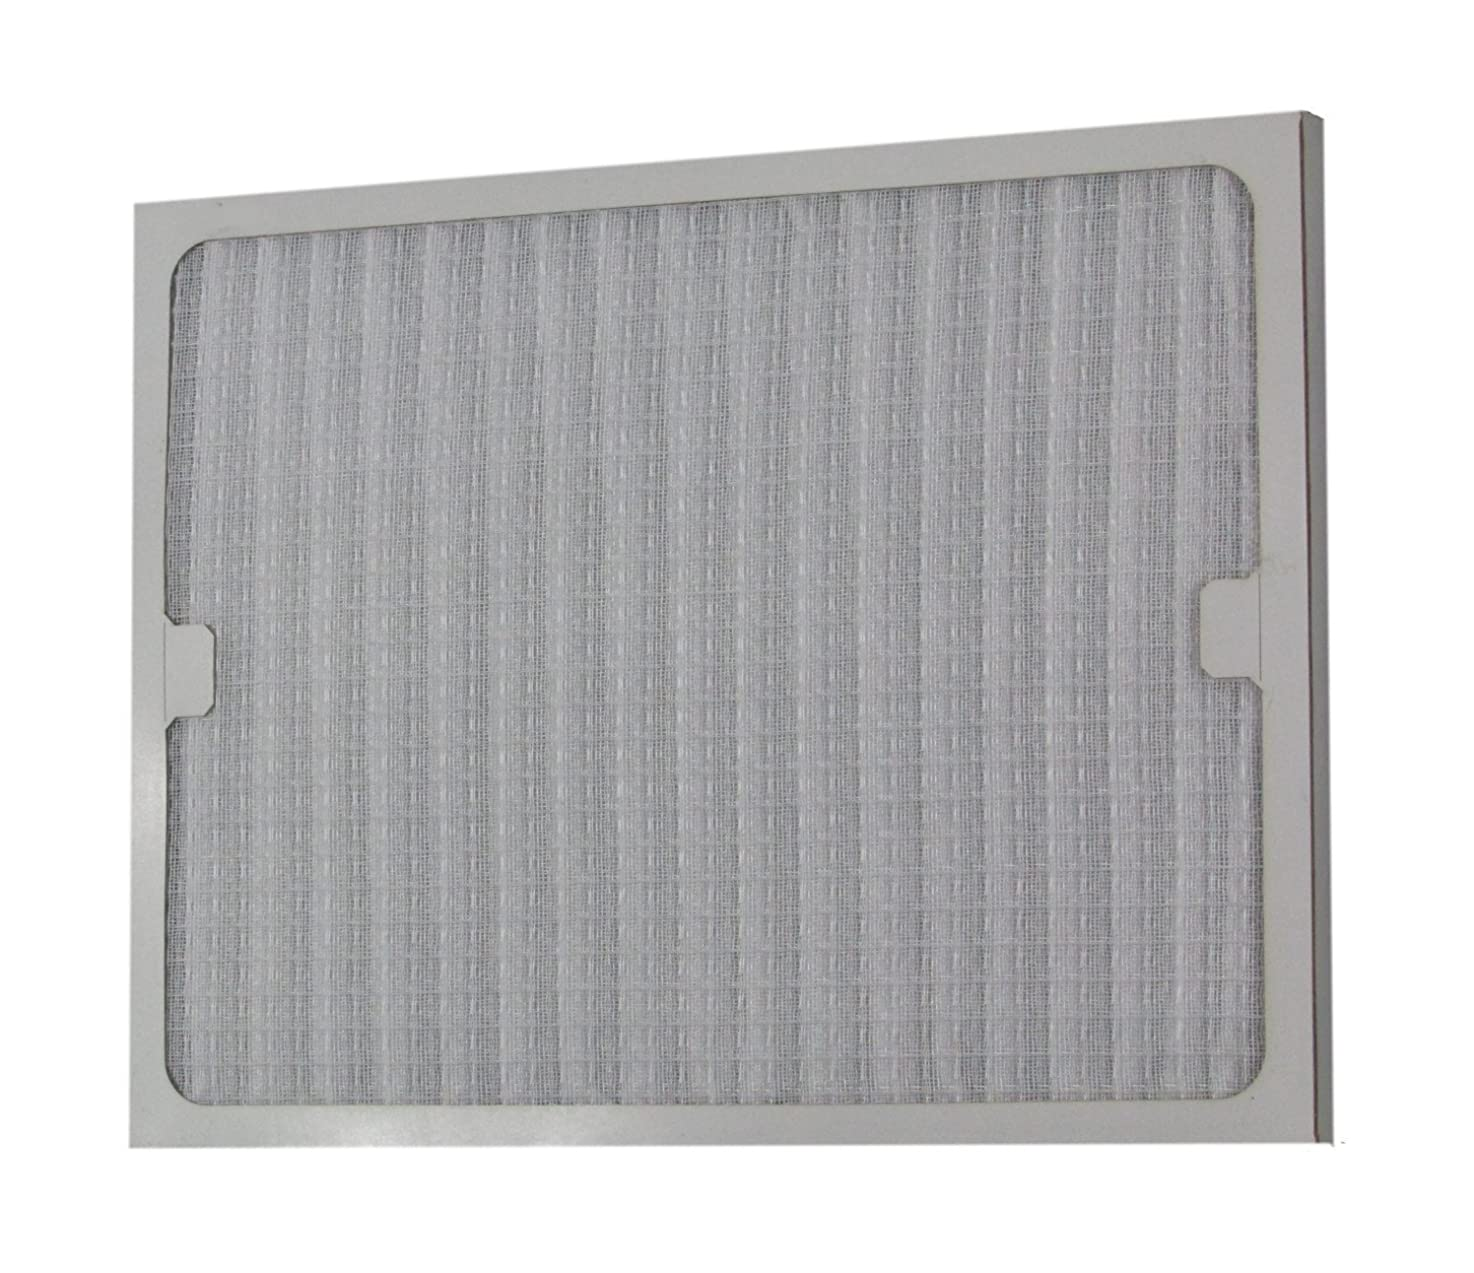 New Hunter Deluxe 30920 Replacement Hepa Filter with Carbonnite (2 Pack)